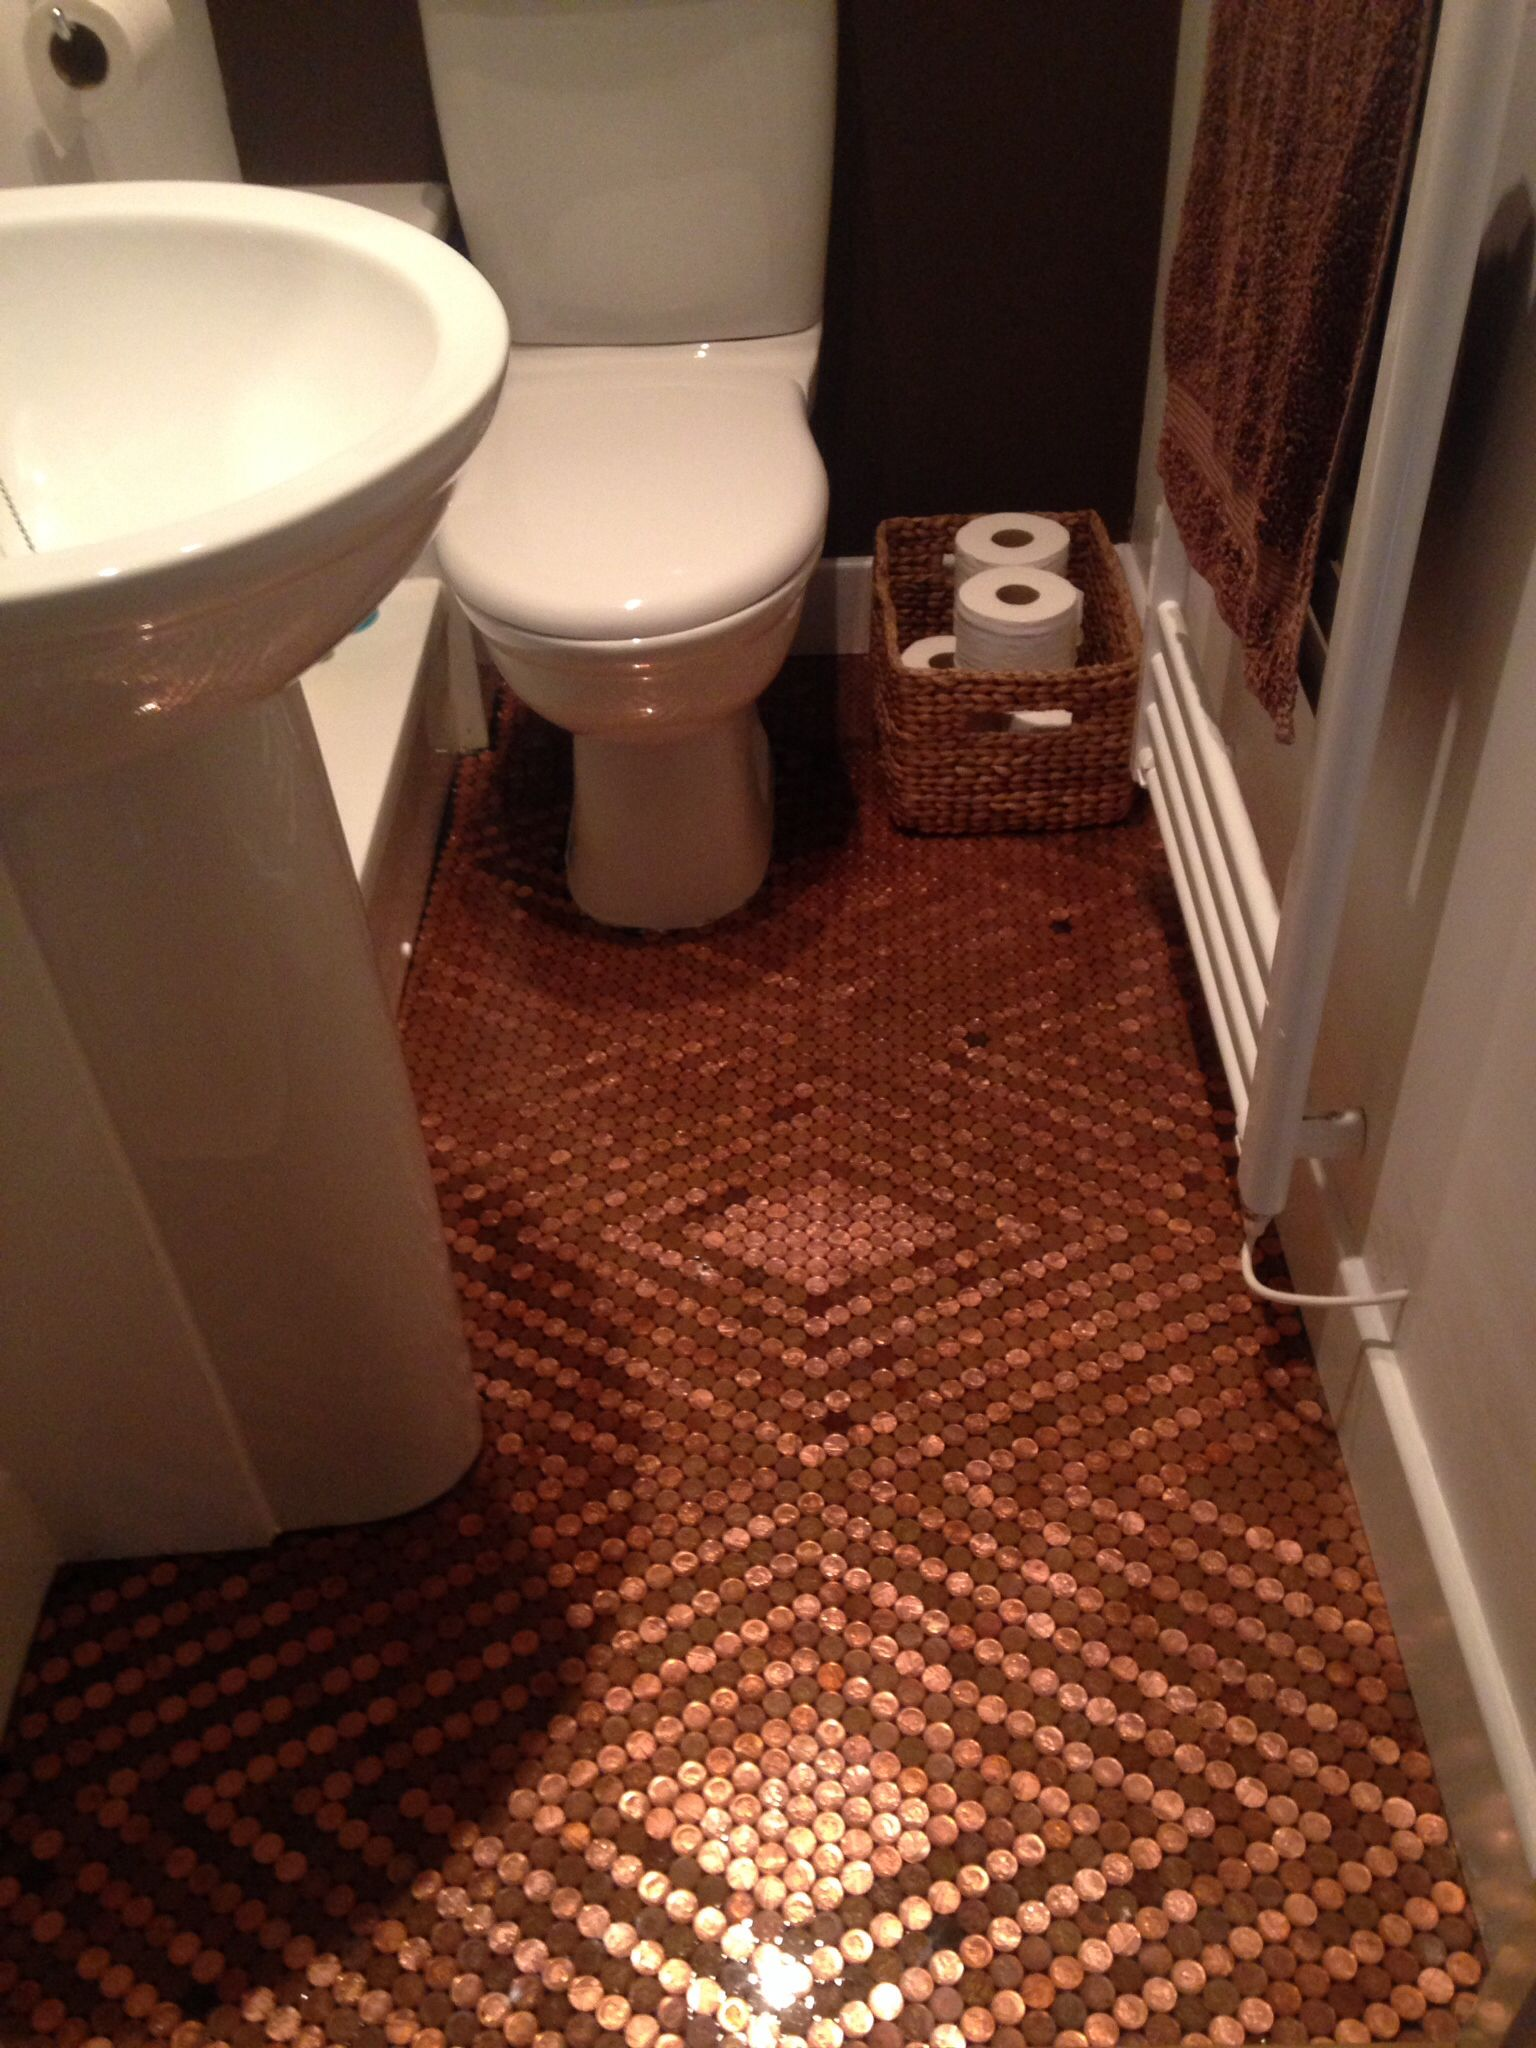 The best diy flooring ideas of pinterest pinterest pennies do the whole damn thing in pennies haha that should add a bit of weight when pulling the bad boy solutioingenieria Image collections